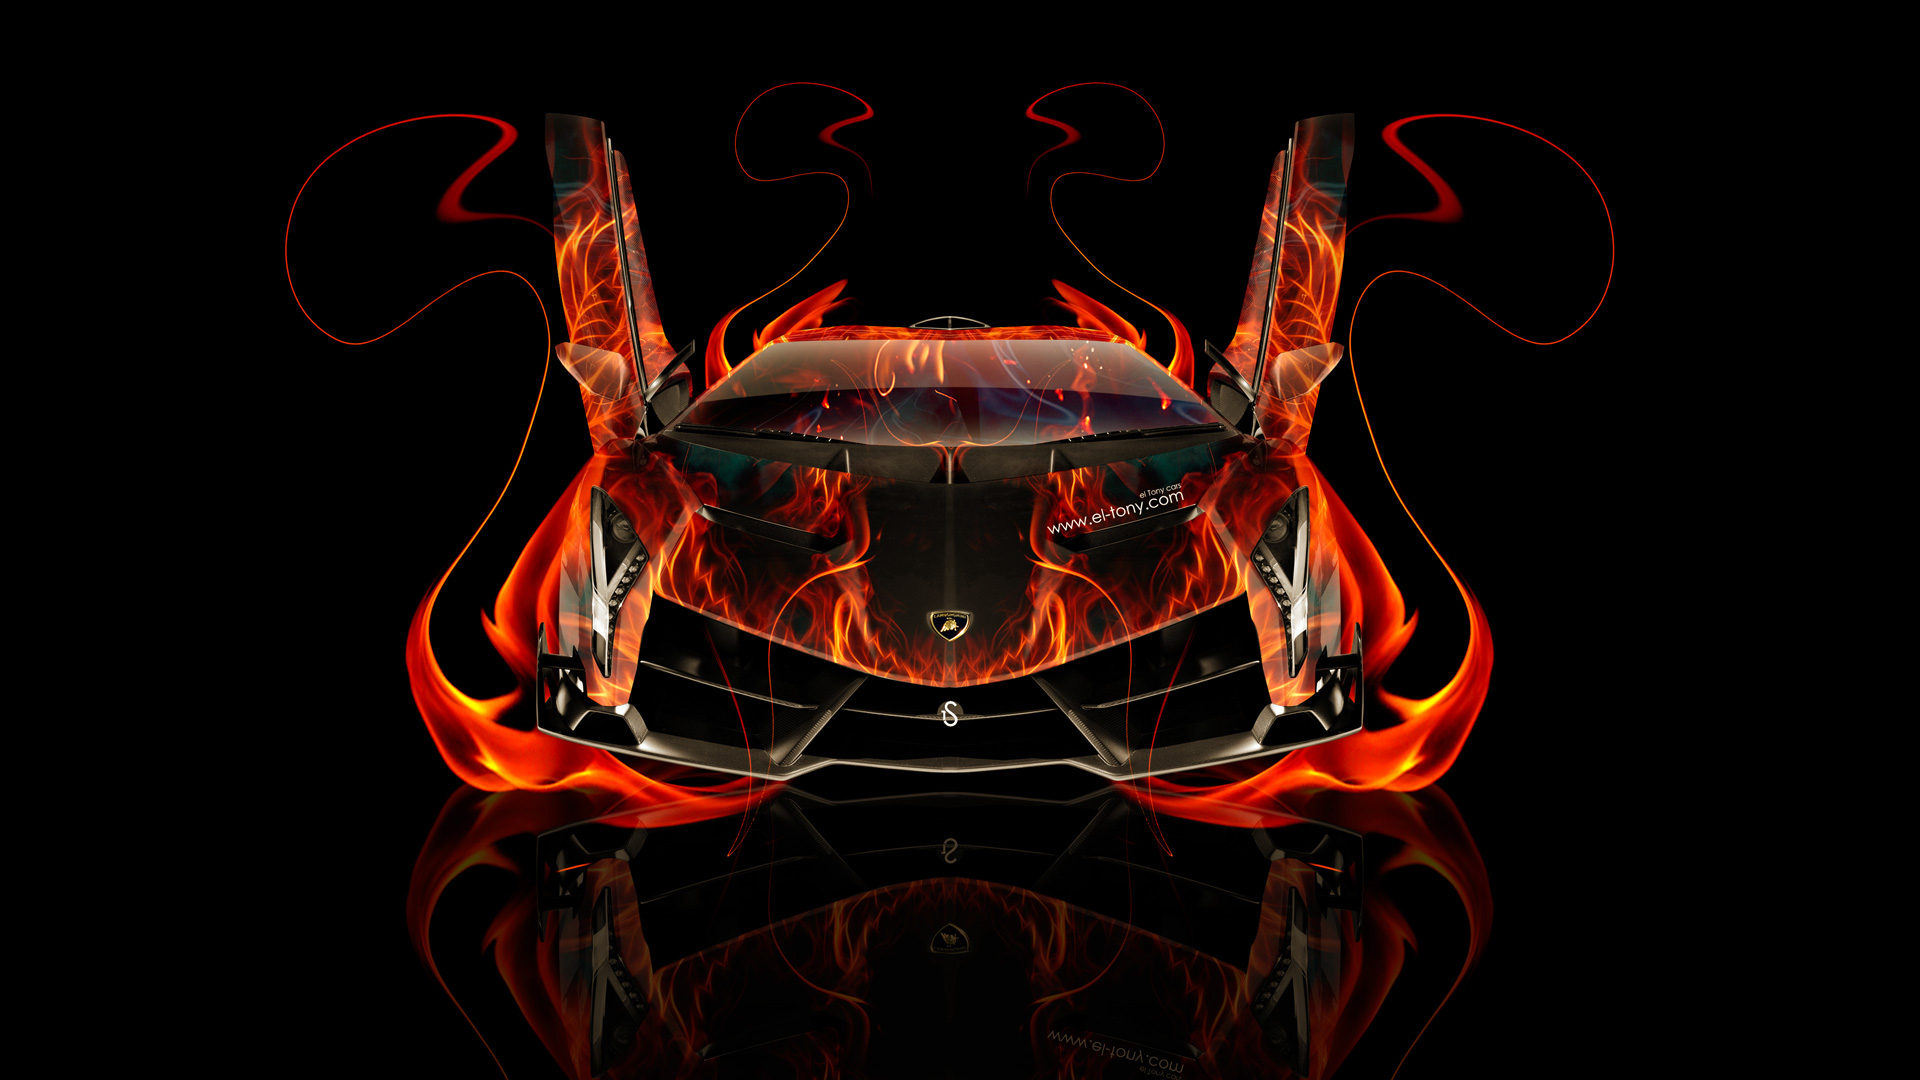 lamborghini veneno front fire abstract car 2014 el tony